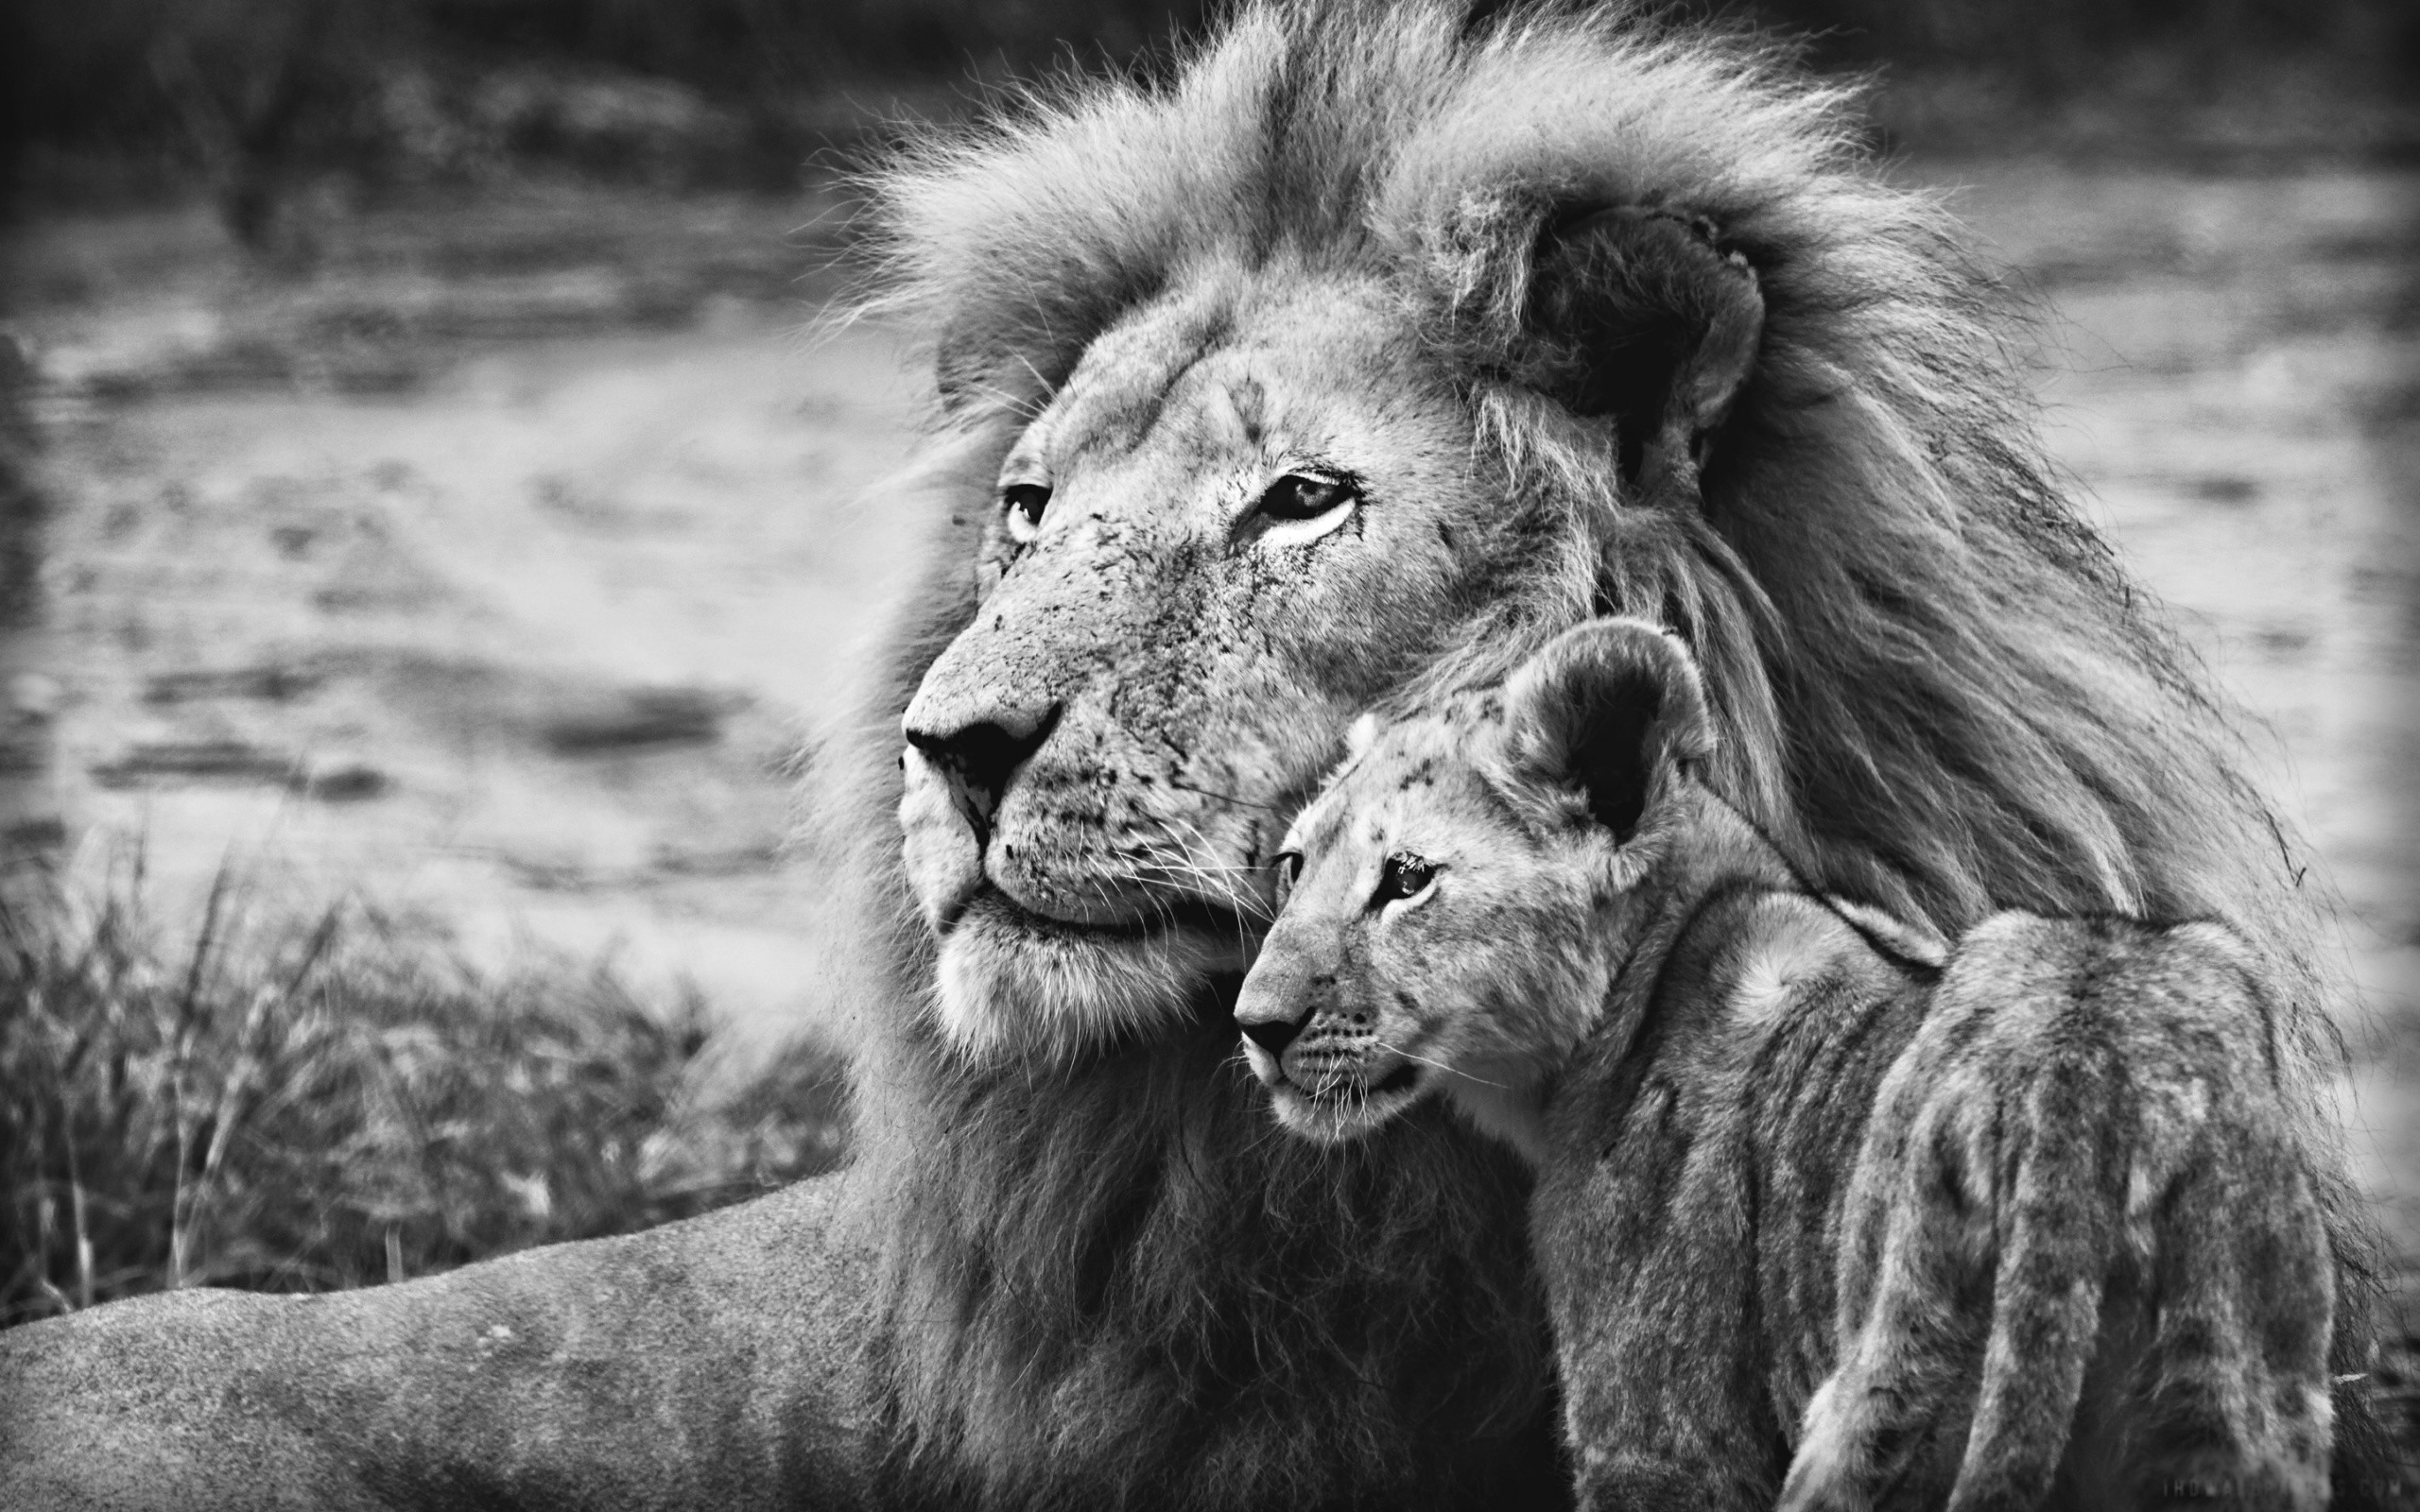 Animals Black And White Elephants 10000 Lions Big Cats: Lion Face Wallpaper (68+ Images